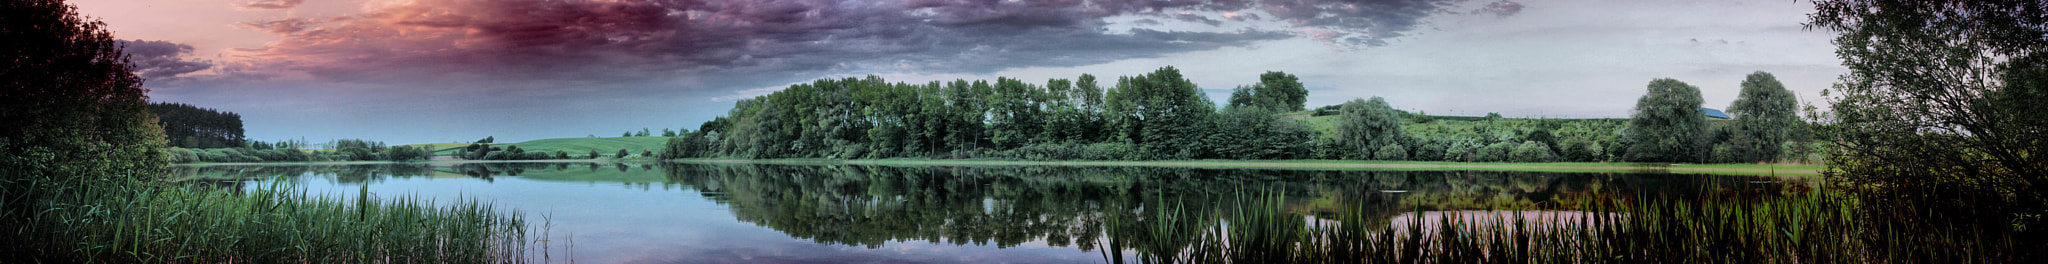 Photograph Panorama, Milawa, Poland by Piotr Zarzycki on 500px